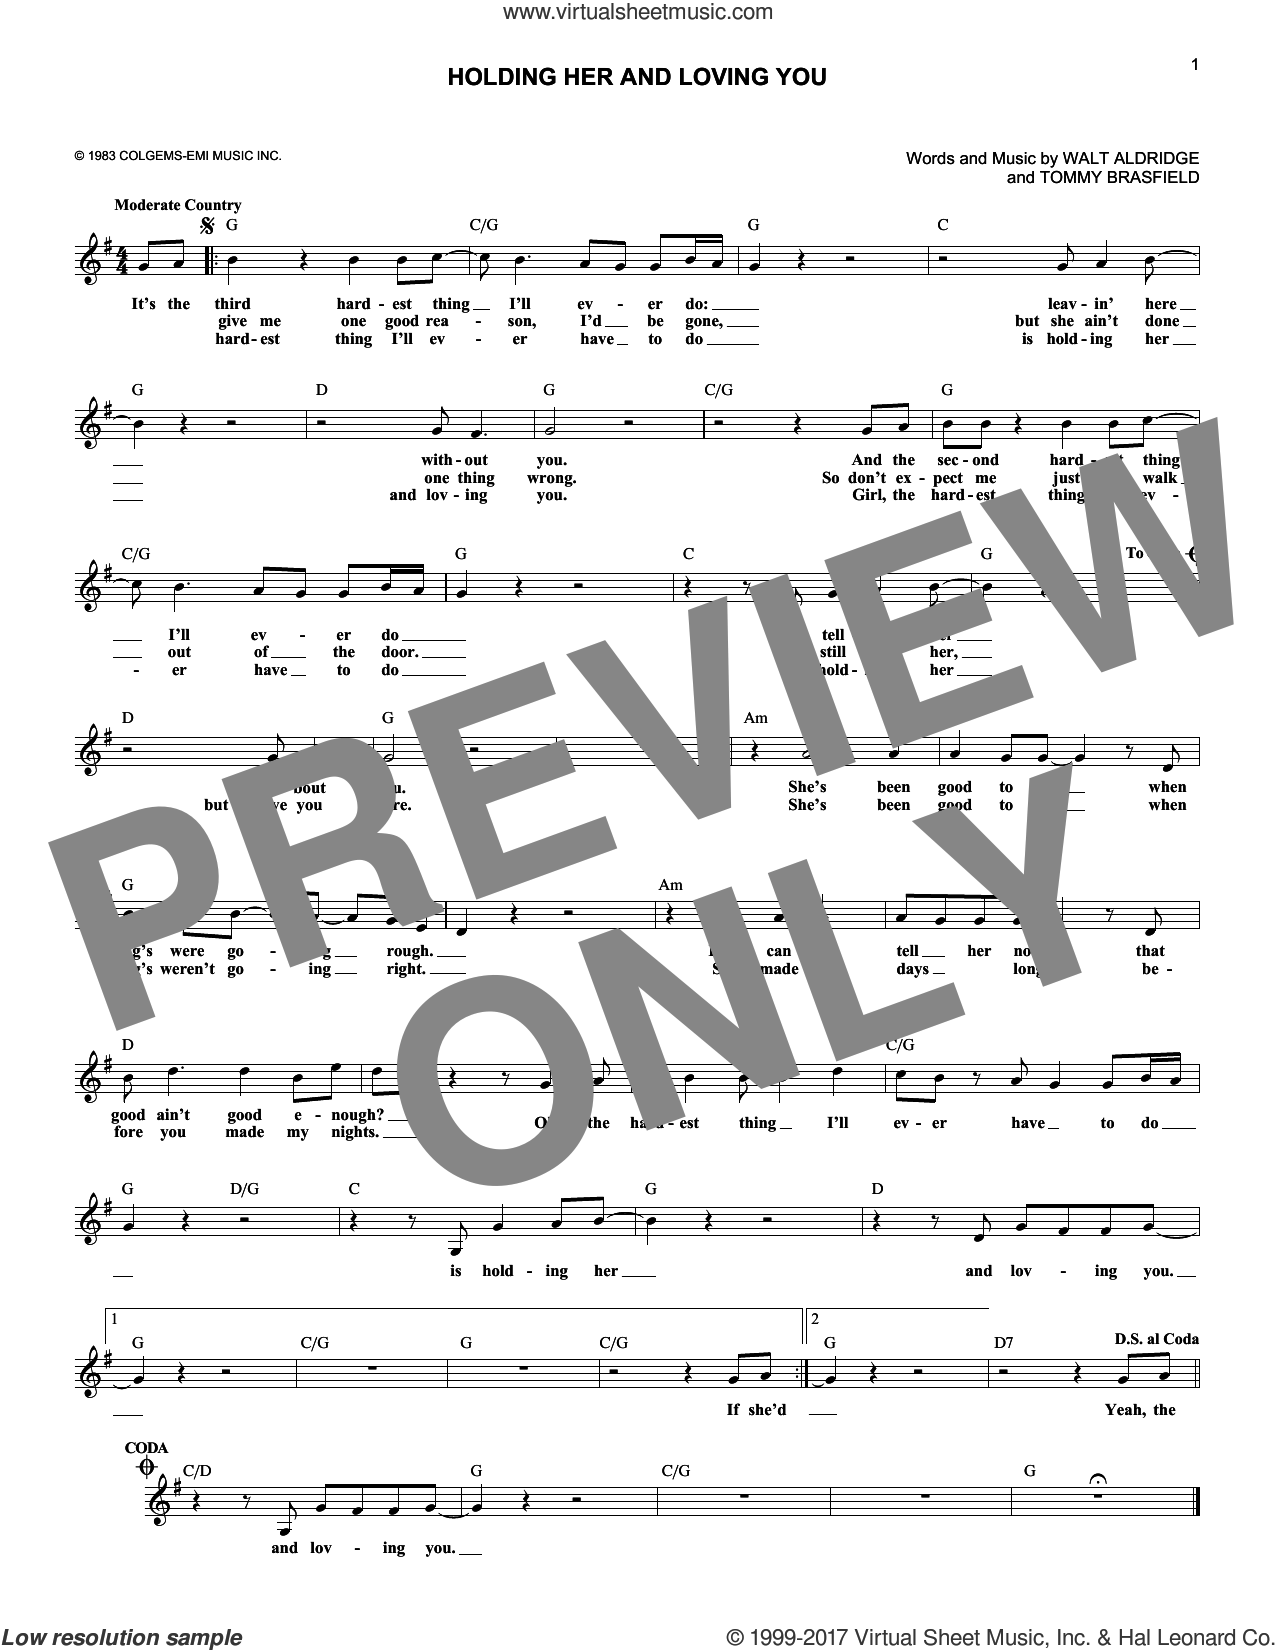 Holding Her And Loving You sheet music for voice and other instruments (fake book) by Earl Thomas Conley, Tommy Brasfield and Walt Aldridge, intermediate skill level